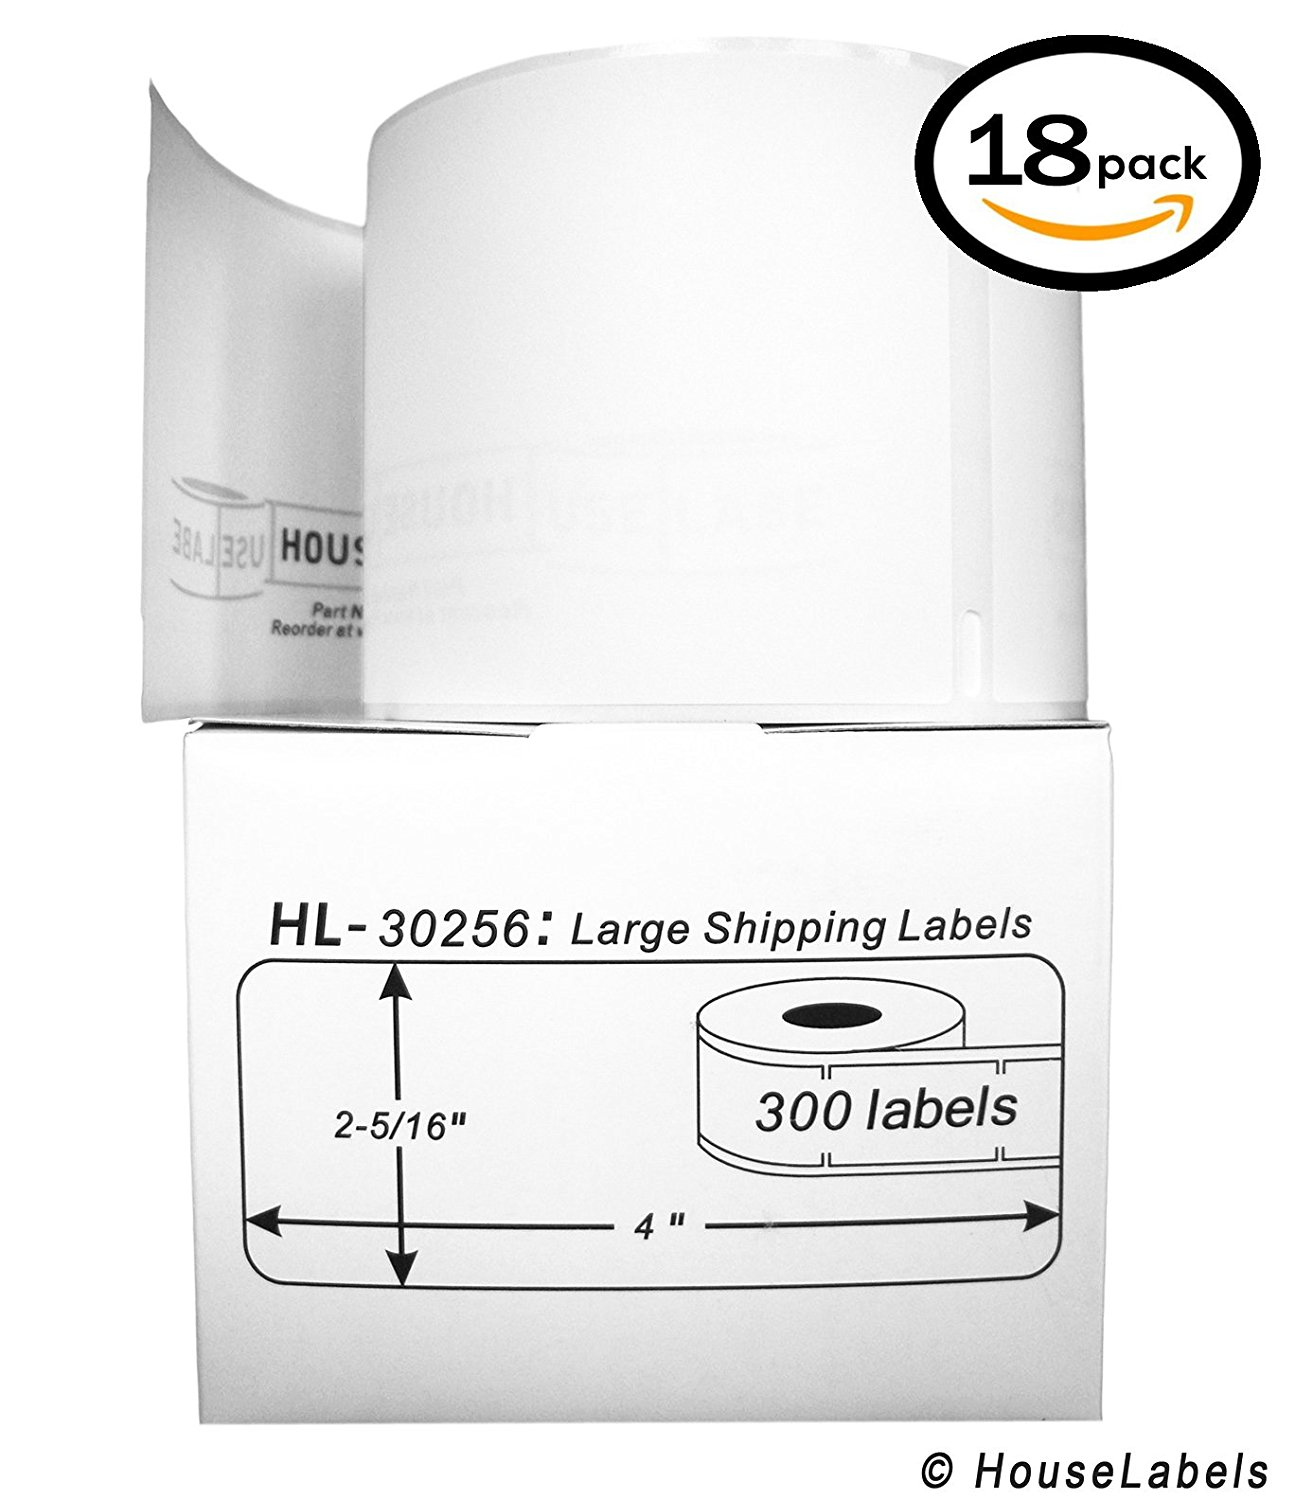 "18 Rolls, 300 Labels per Roll of DYMO-Compatible 30256 Large Shipping Labels (2-5/16"" x 4"") -- BPA Free!"